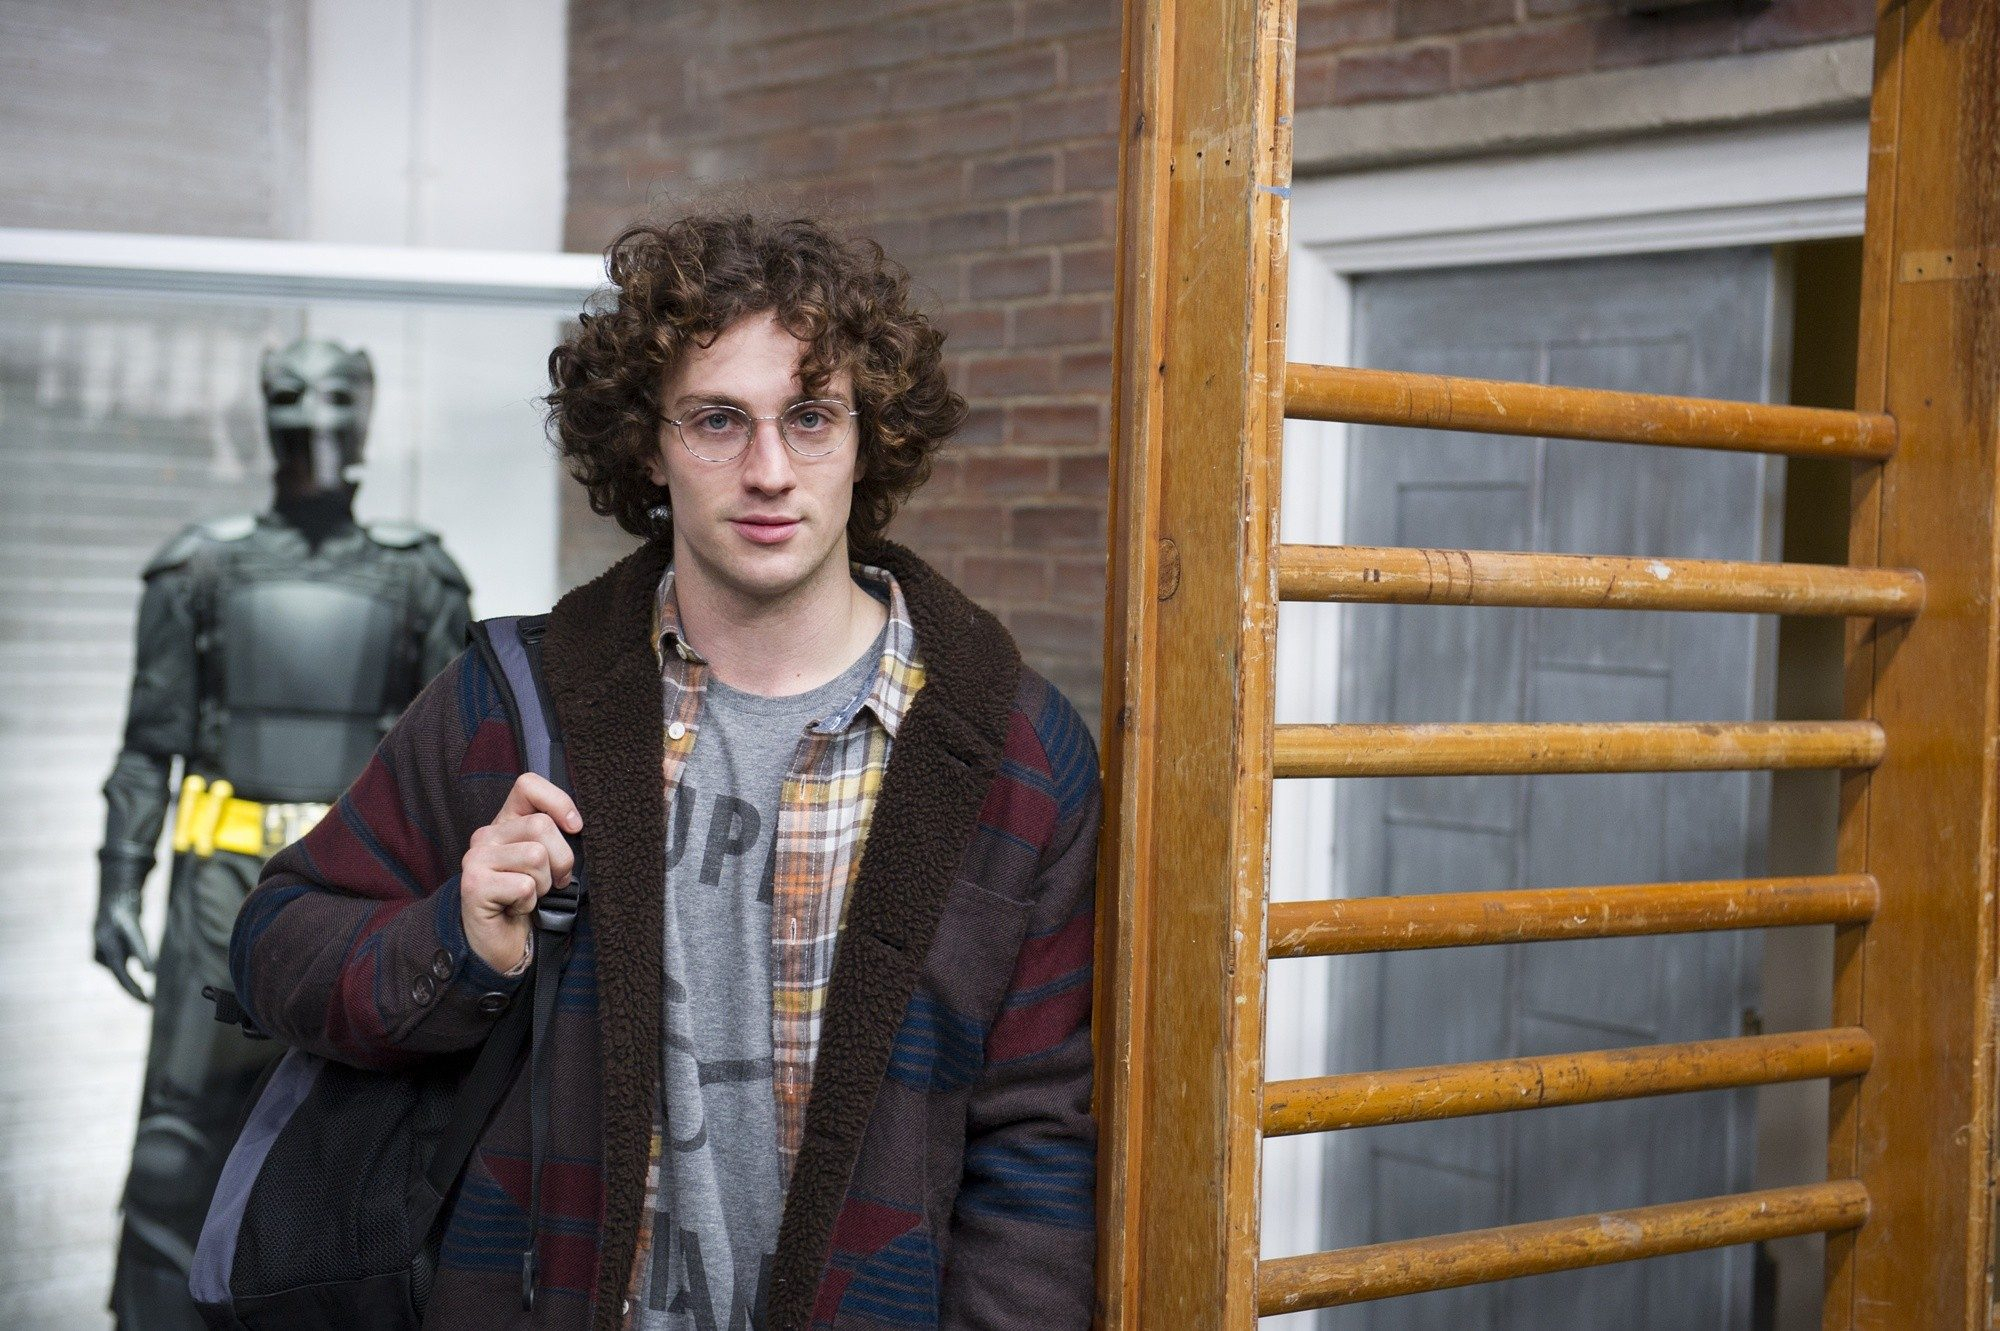 Aaron Johnson stars as Dave Lizewski in Universal Pictures' Kick-Ass 2 (2013)